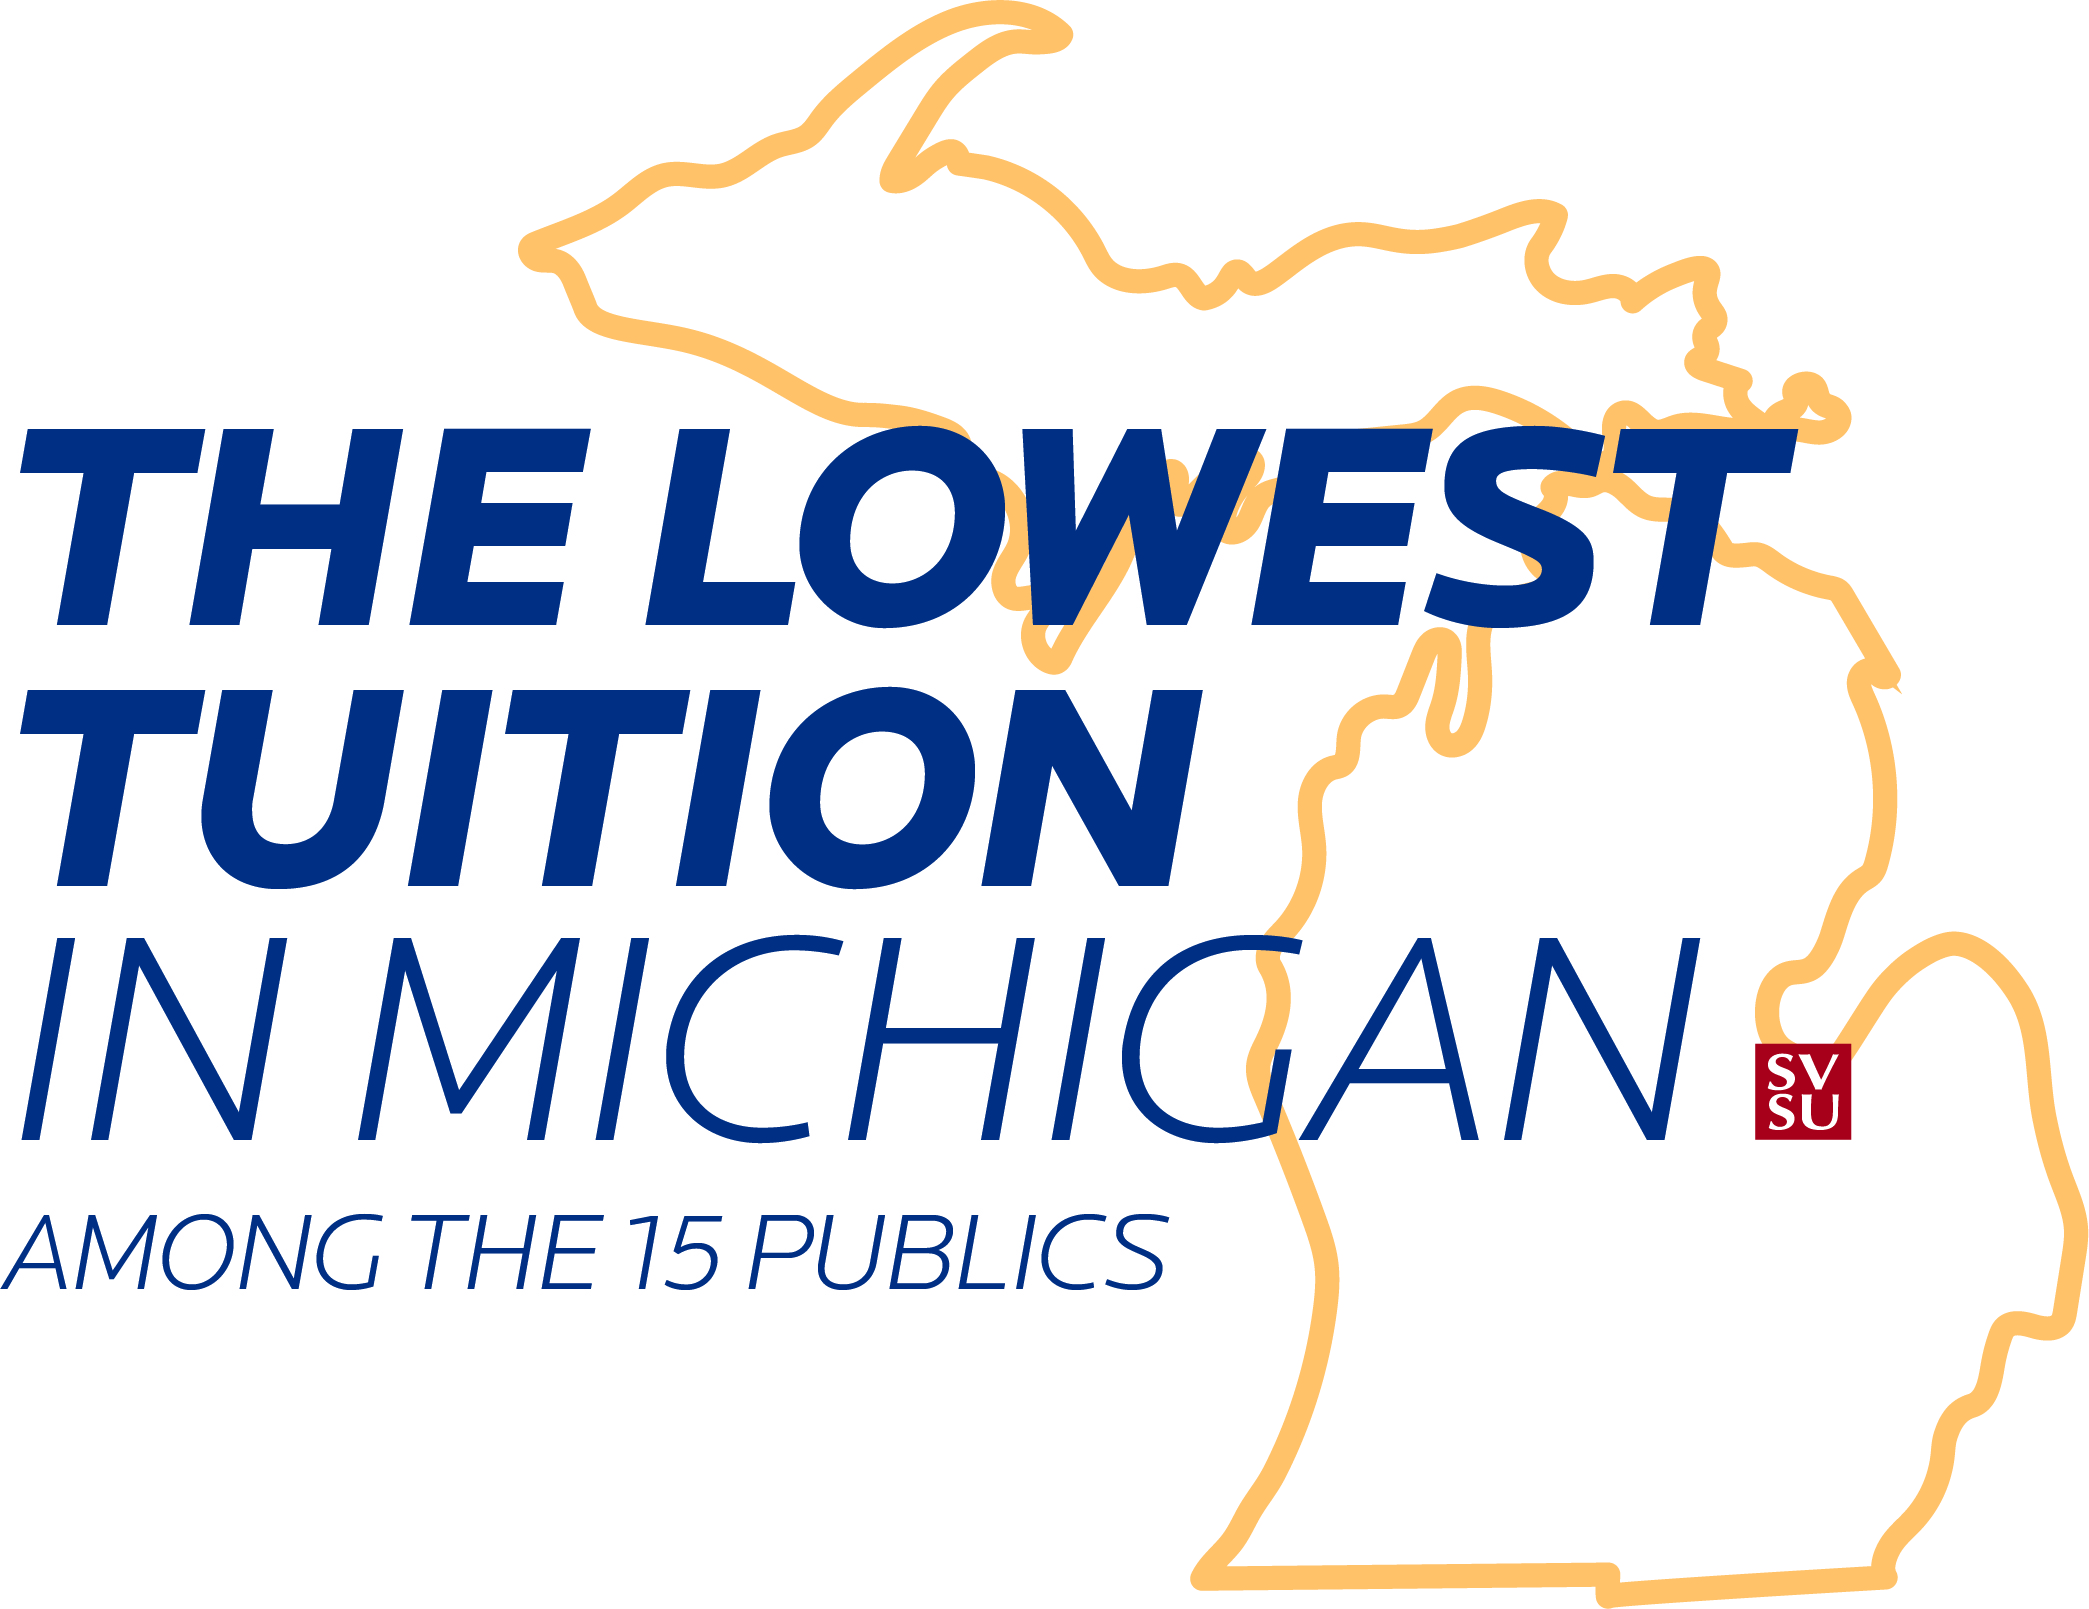 Lowest Tuition in michigan